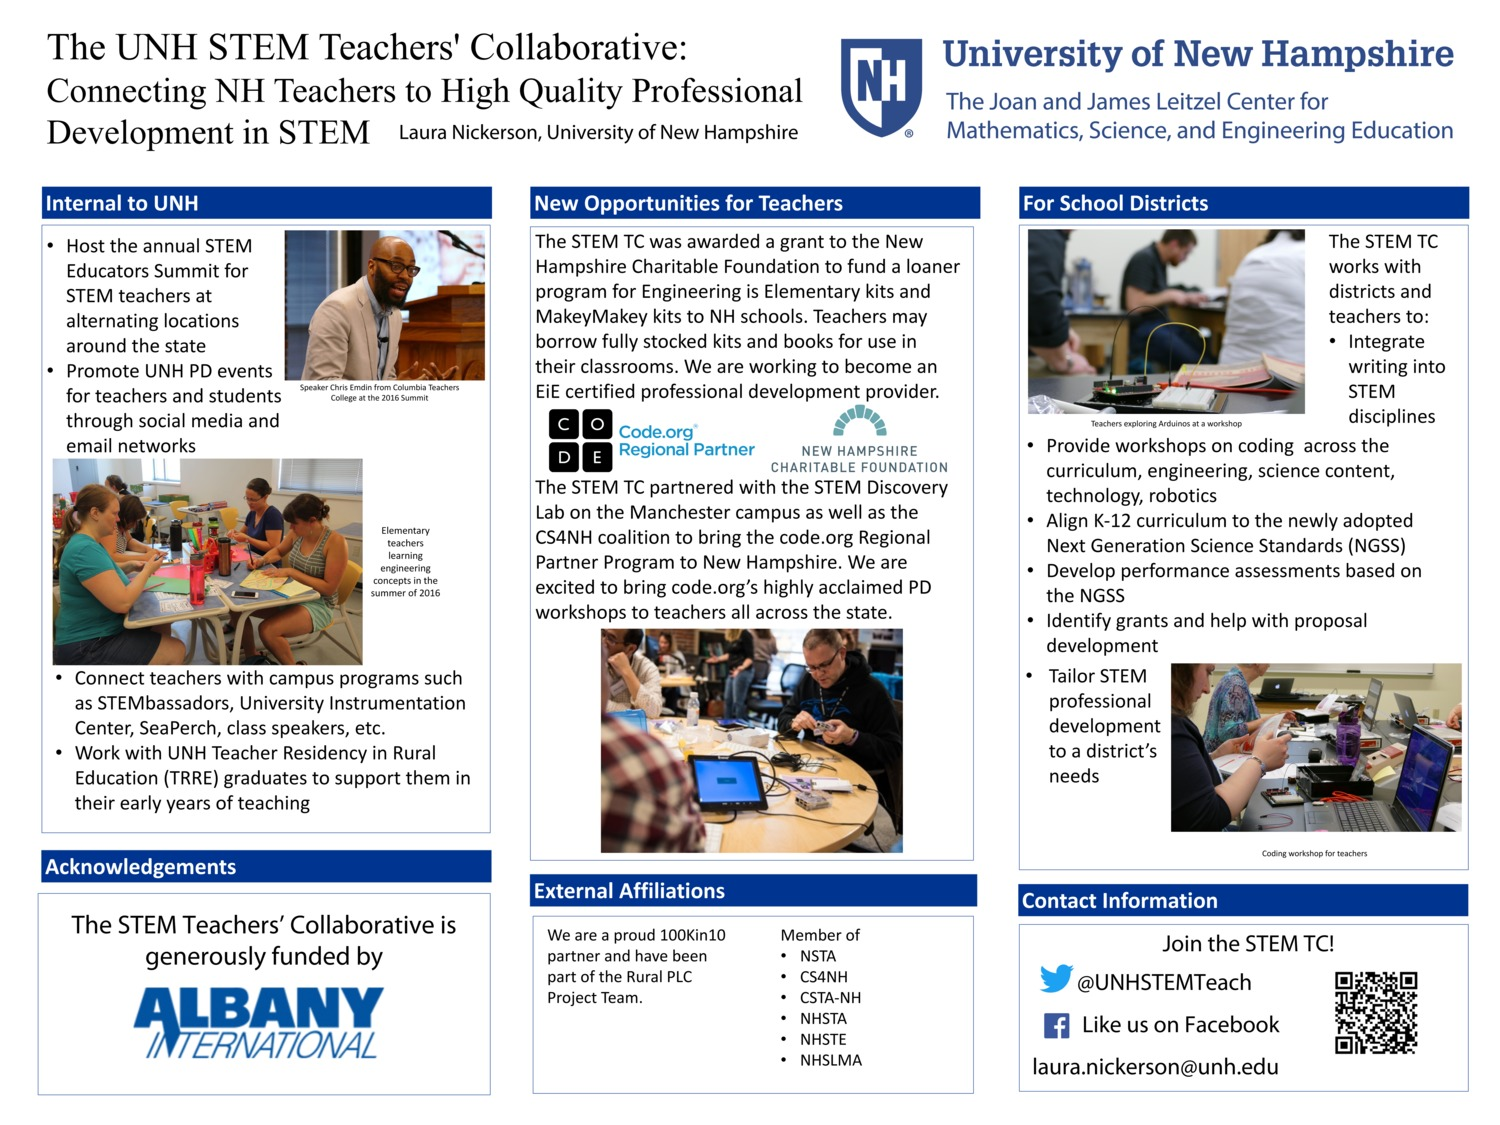 Stem Tc Poster For Ne-Aste by lnickerson